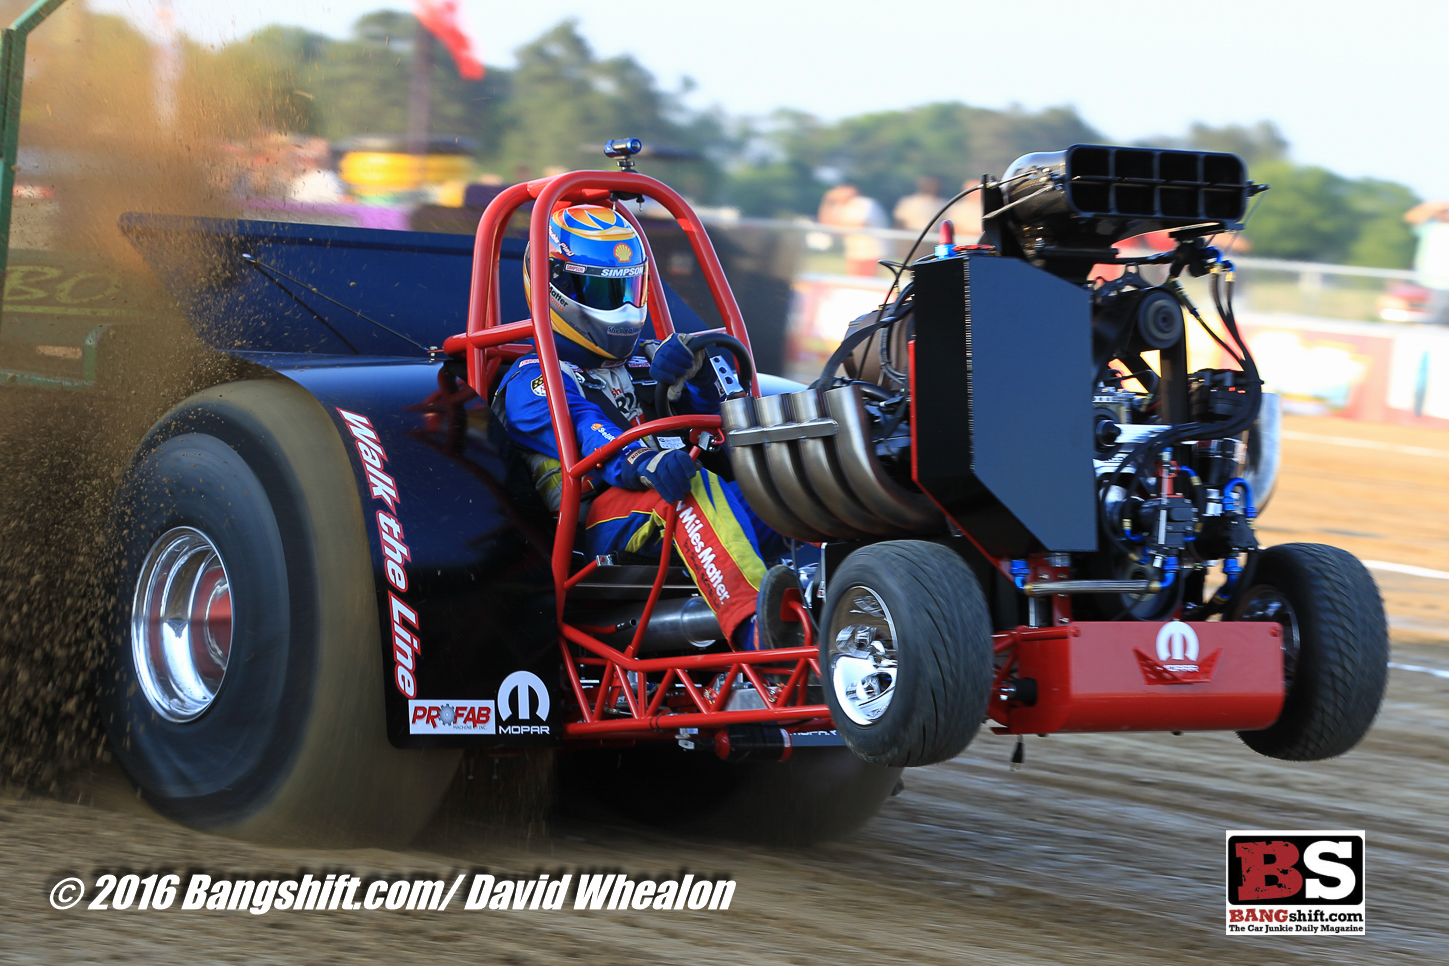 Tractor Pulling News - Pullingworld com: The new Walk the Line